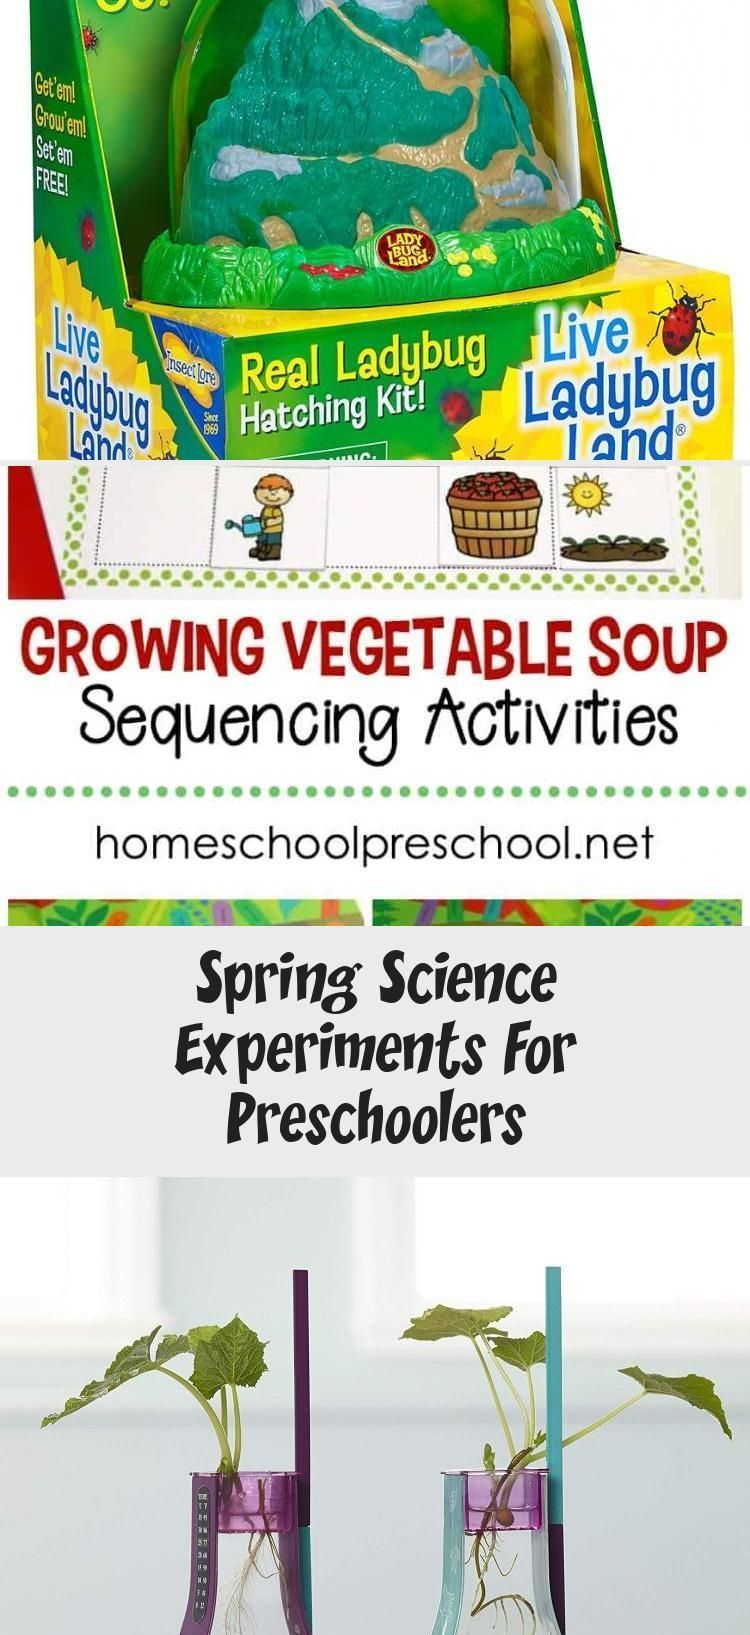 Spring Science Experiments For Preschoolers #scienceexperimentsforpreschoolers Take advantage of all the new that spring has to offer, and try as many of these preschool science experiments as you can!    #springscience #preschoolscience #scienceexperiments via @homeschlprek #scienceFondos #sciencePhotography #scienceForKids #scienceIdeas #scienceClipart #scienceexperimentsforpreschoolers Spring Science Experiments For Preschoolers #scienceexperimentsforpreschoolers Take advantage of all the new #scienceexperimentsforpreschoolers